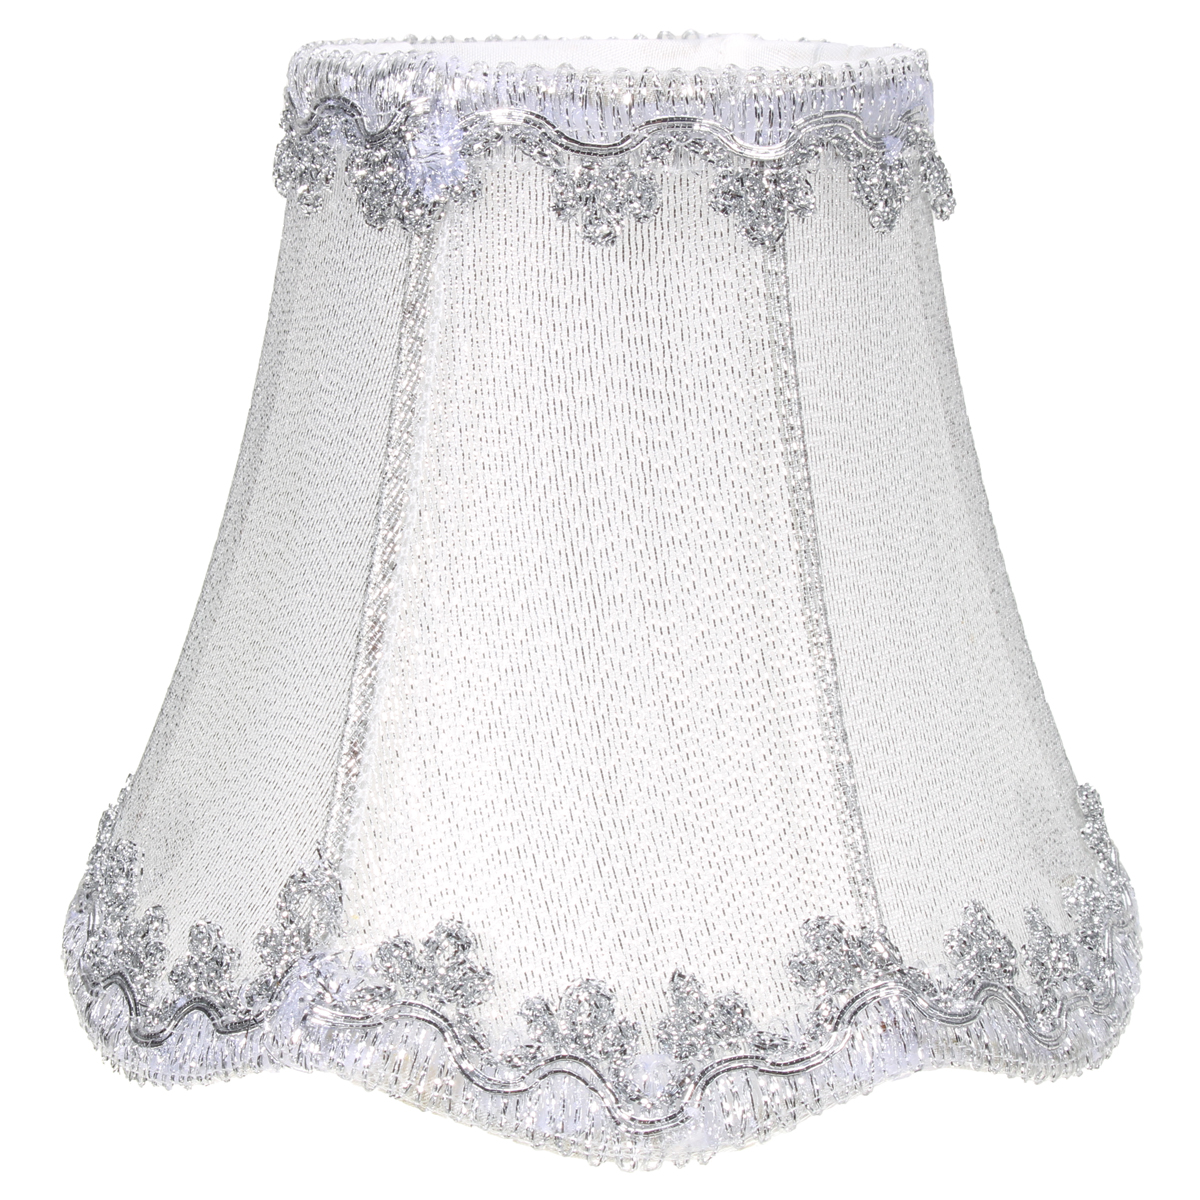 Vintage Small Lace Lamp Shades Textured Fabric Covers For